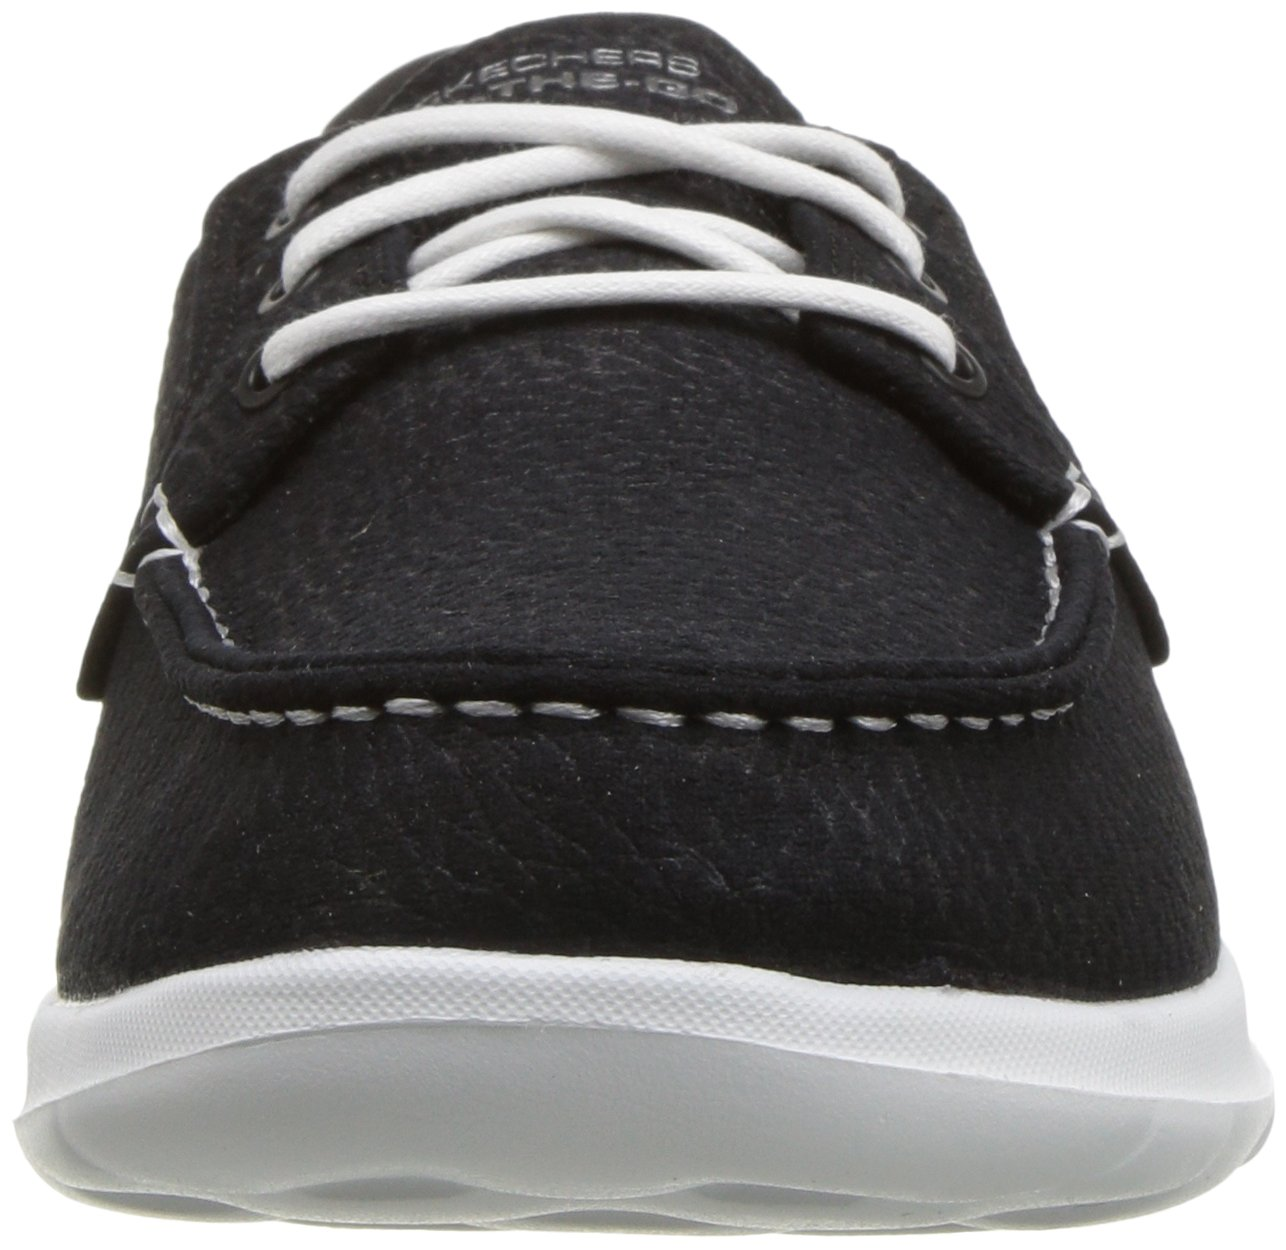 Skechers Women's Go Walk Lite-Eclipse Boat Shoe B075Y2ZDPY 8 M US|Black/White